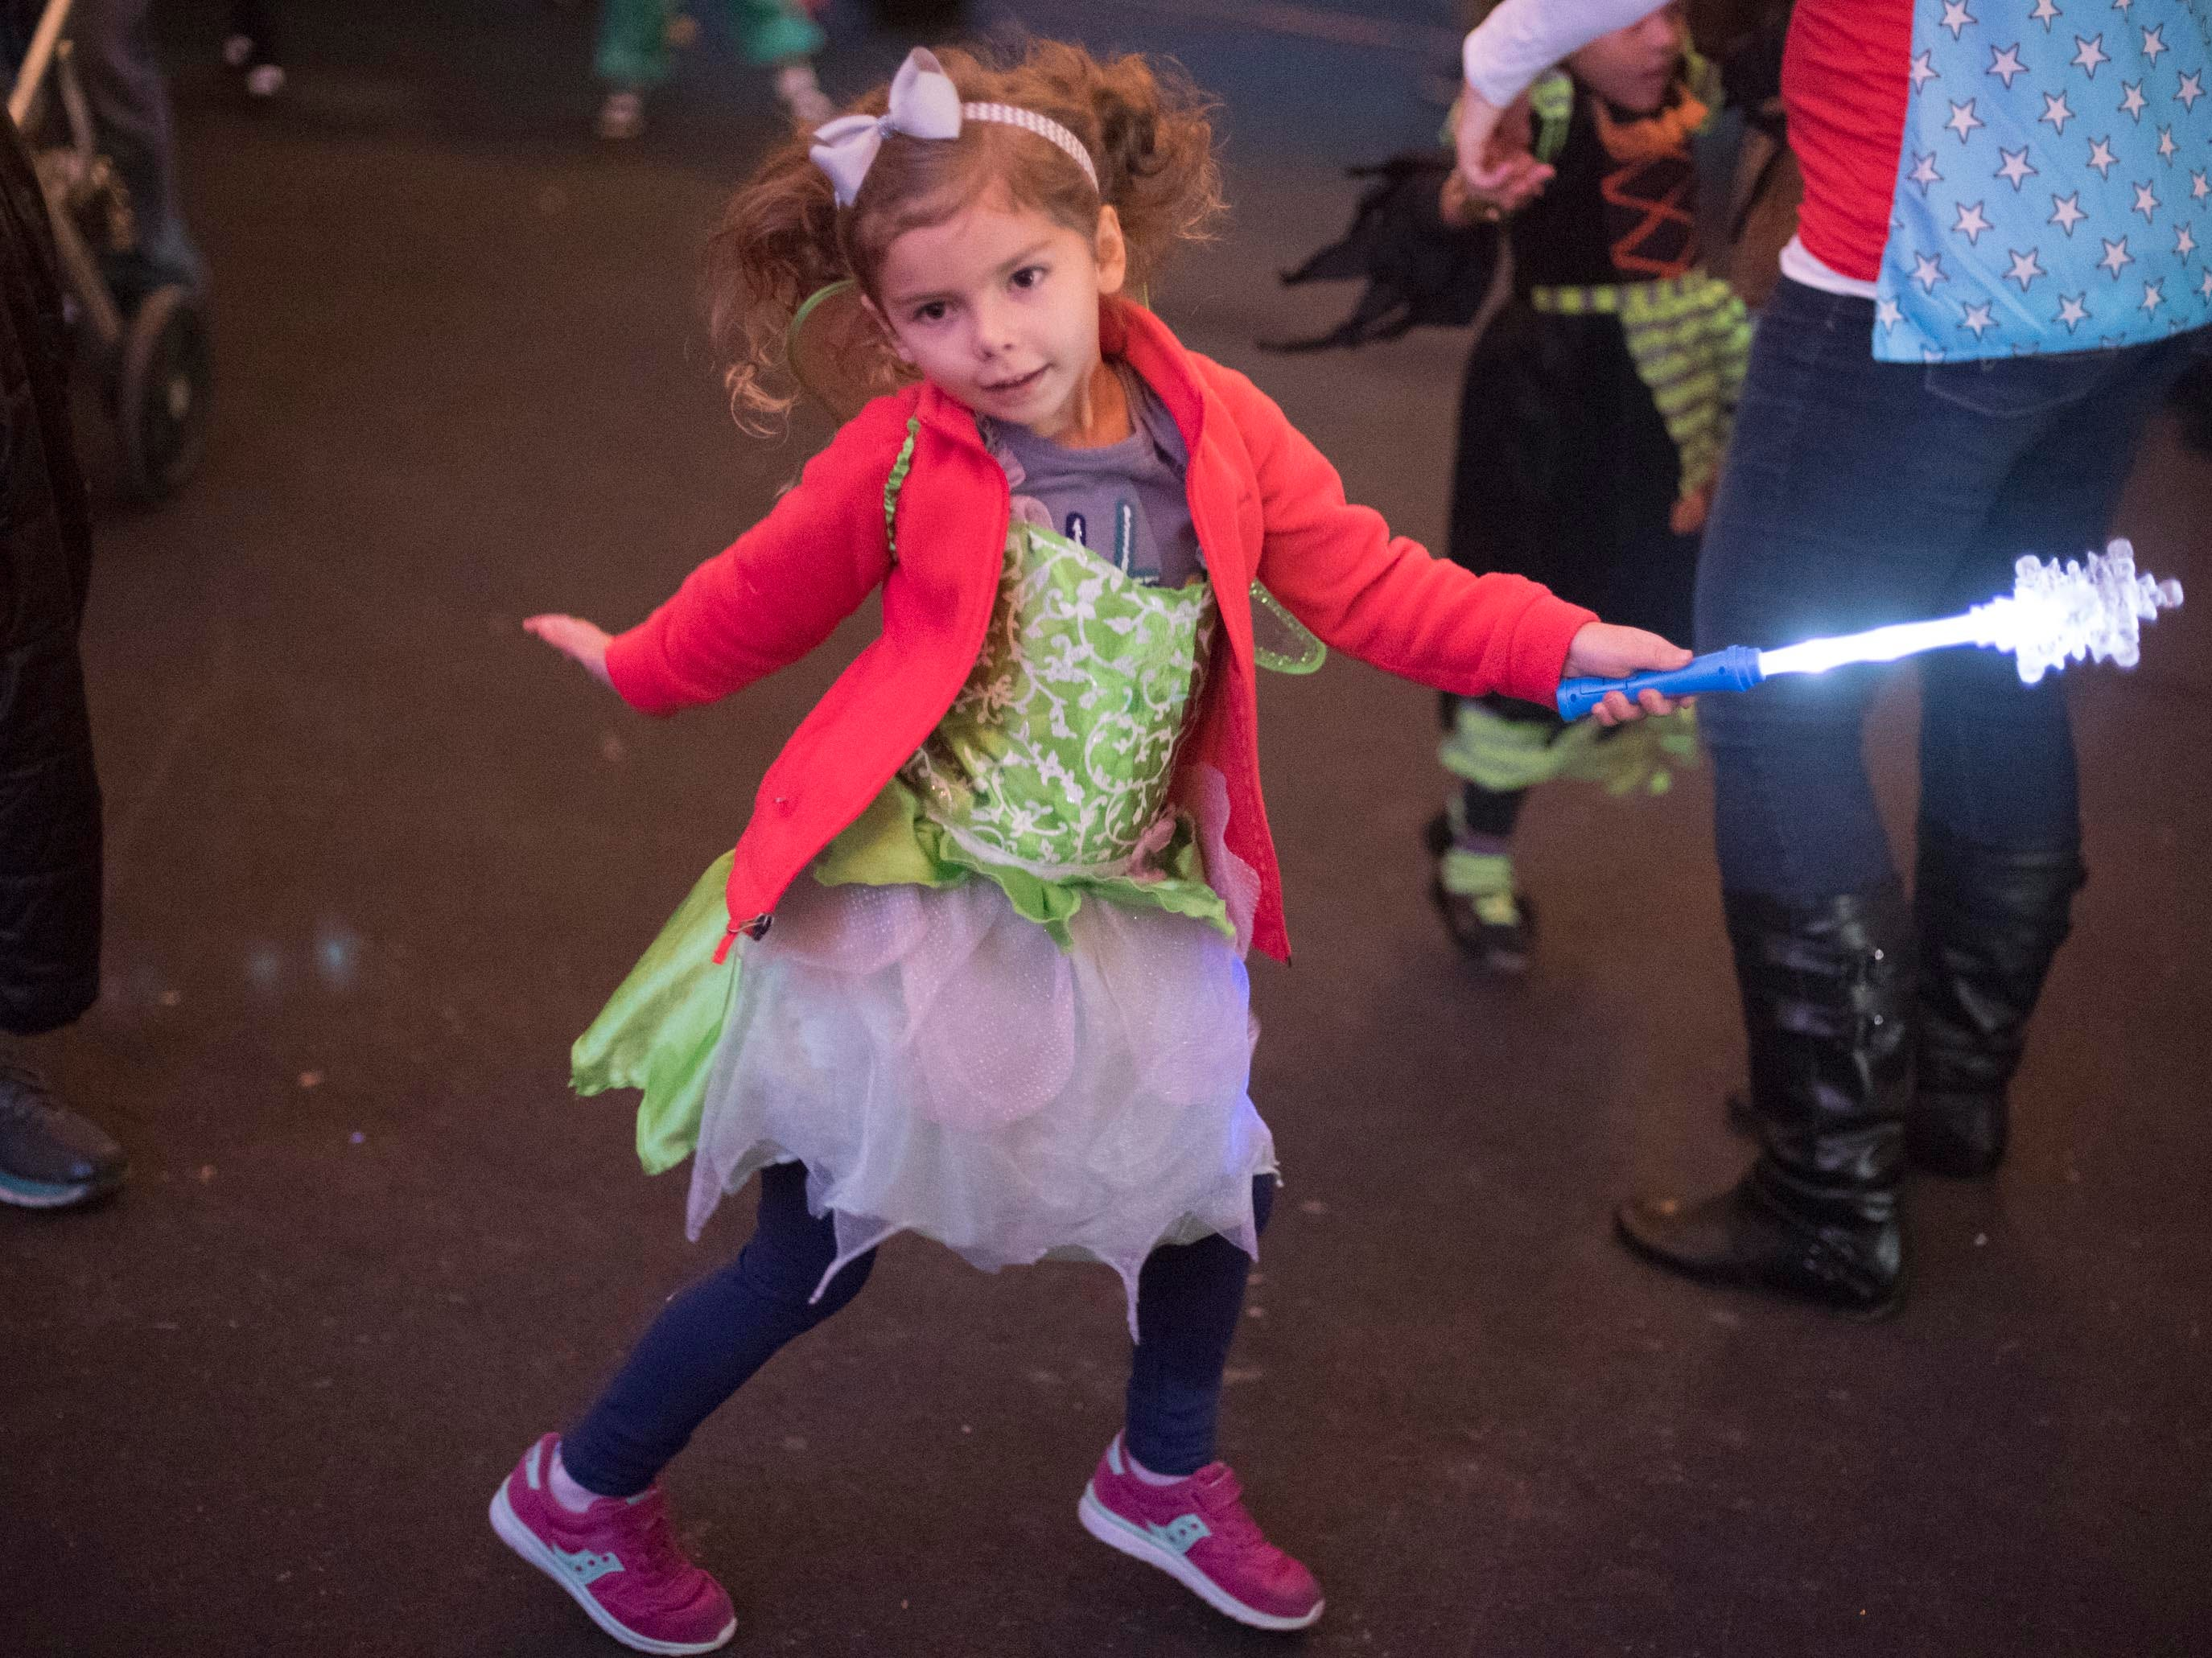 A young trick-or-treater dances at the Monster Mash dance party during Zoo Knoxville's Boo! at the Zoo on Saturday, October 20, 2018.